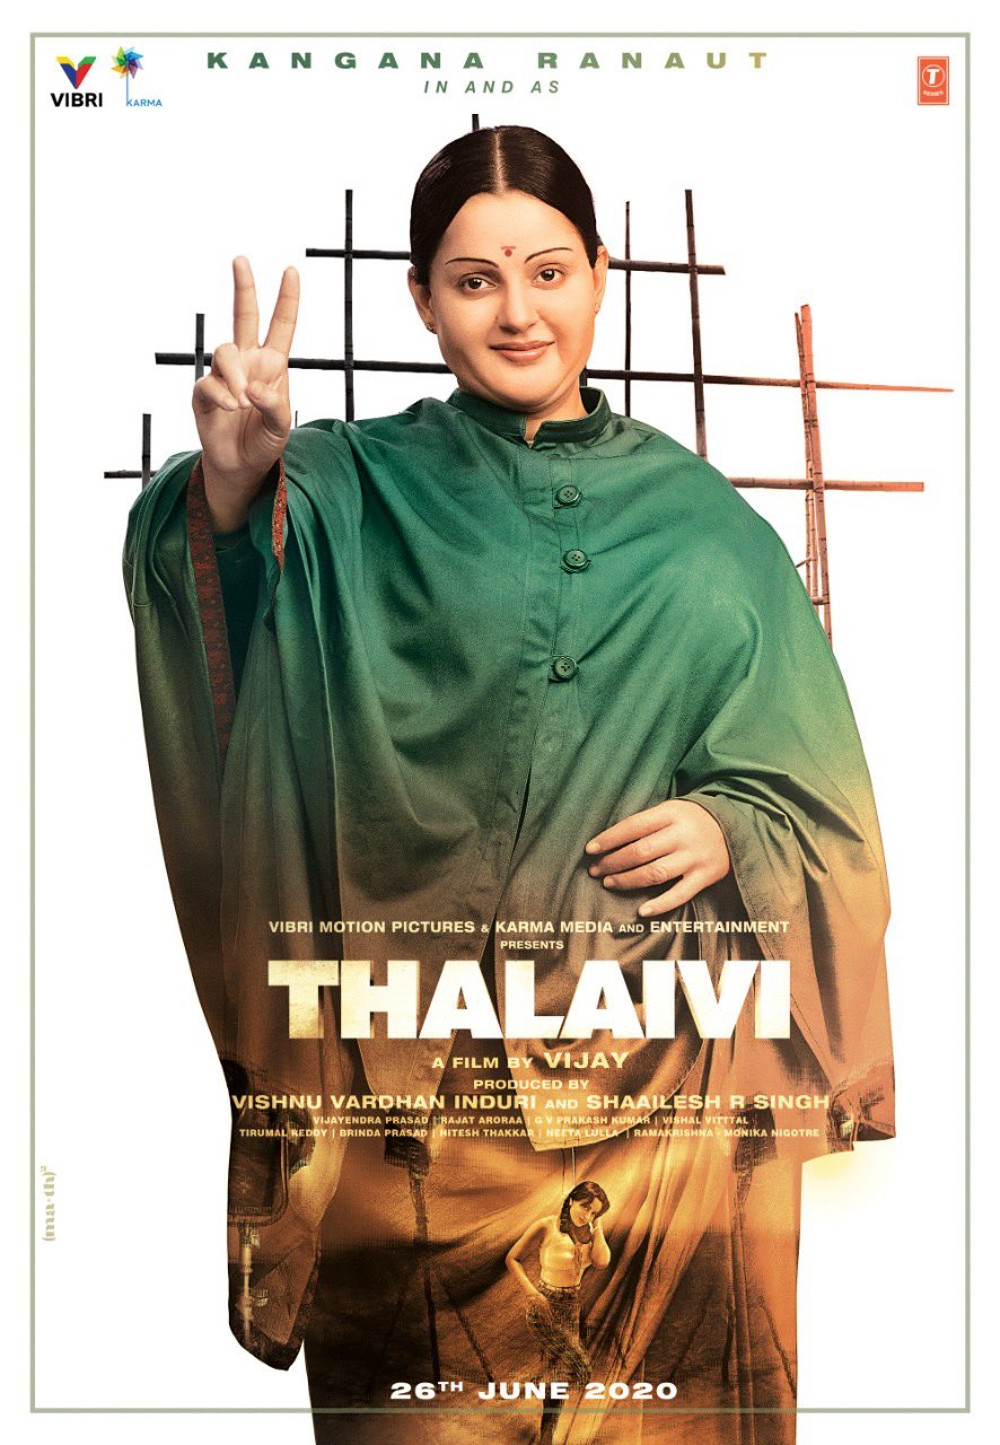 Kangana Ranaut Thalaivi Movie First Look Poster HD